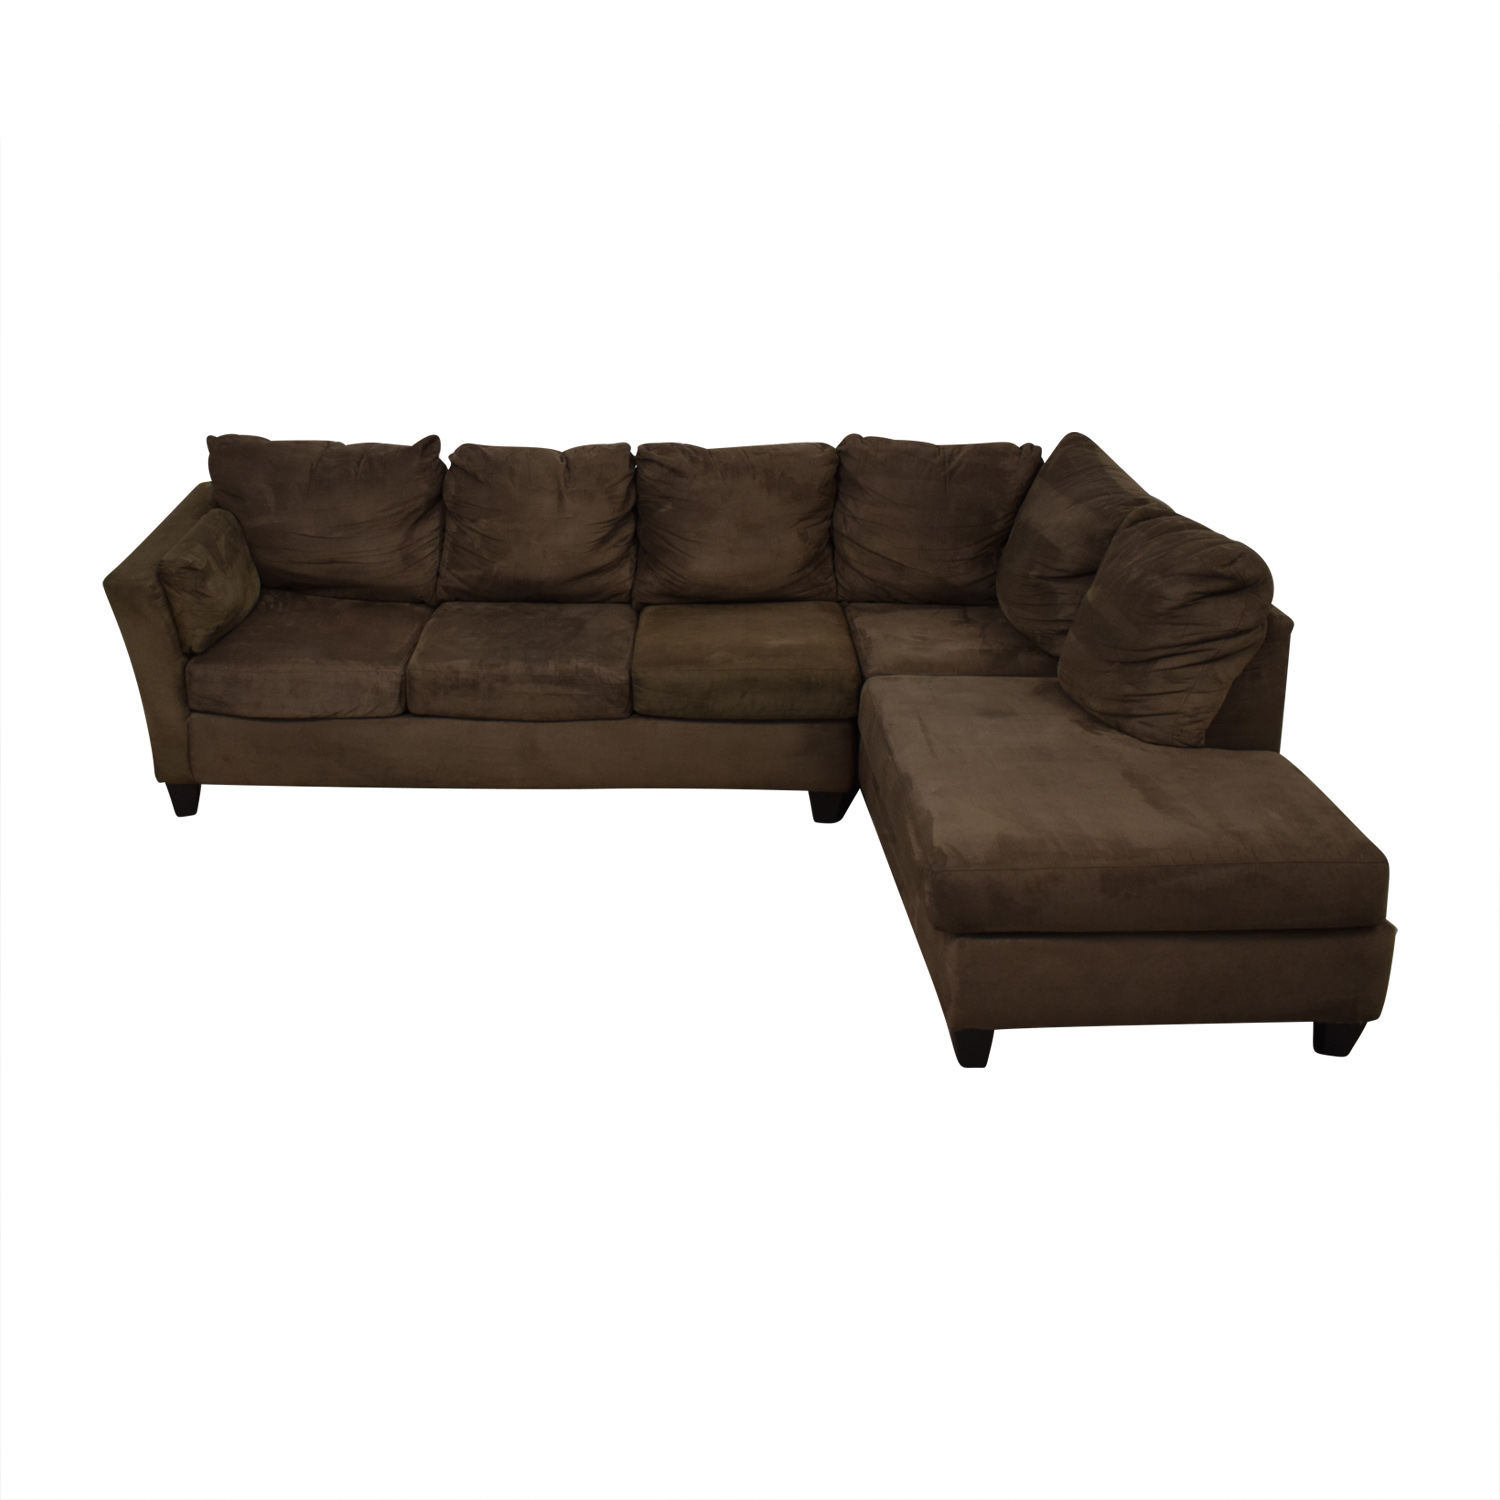 Libre II Sectional Sofa second hand